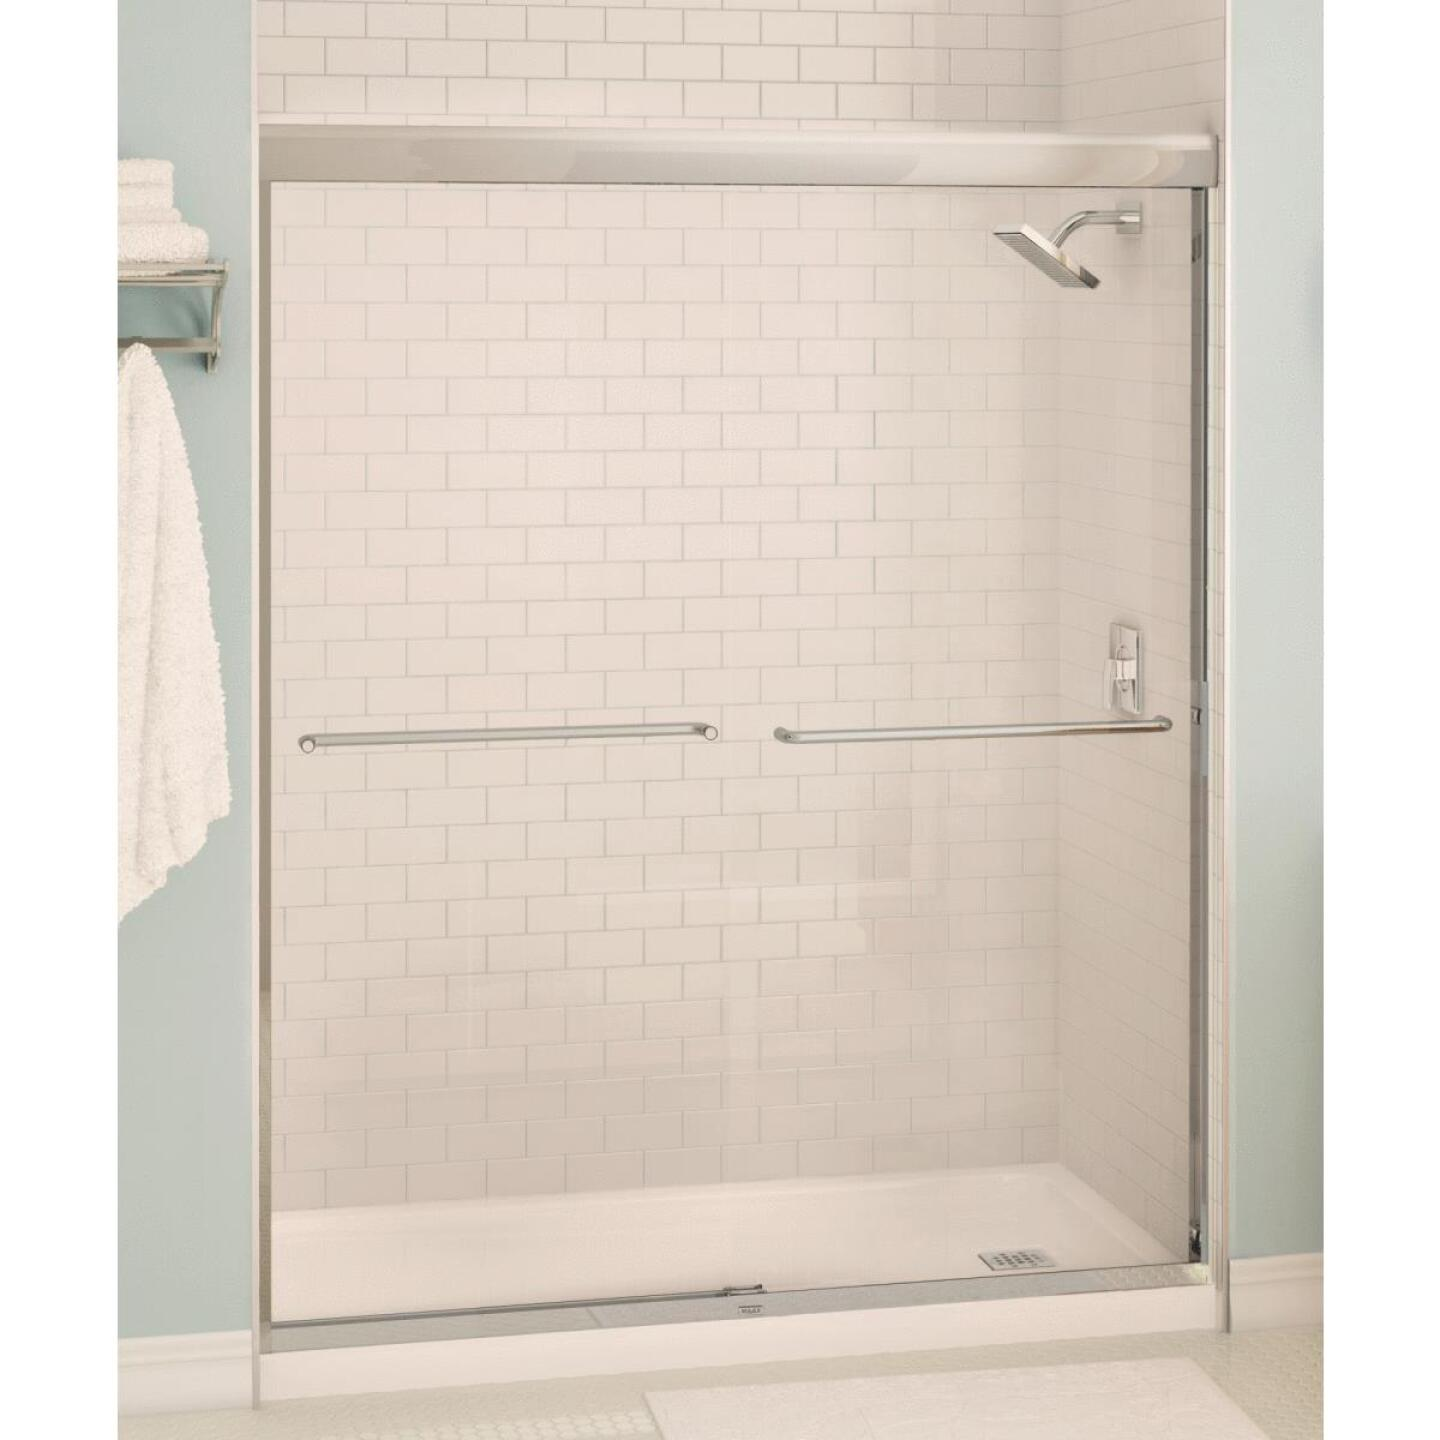 Maax Aura 59.5 In. W. X 71 In. H. Brushed Nickel Frameless Clear Glass Sliding Shower Door Image 1